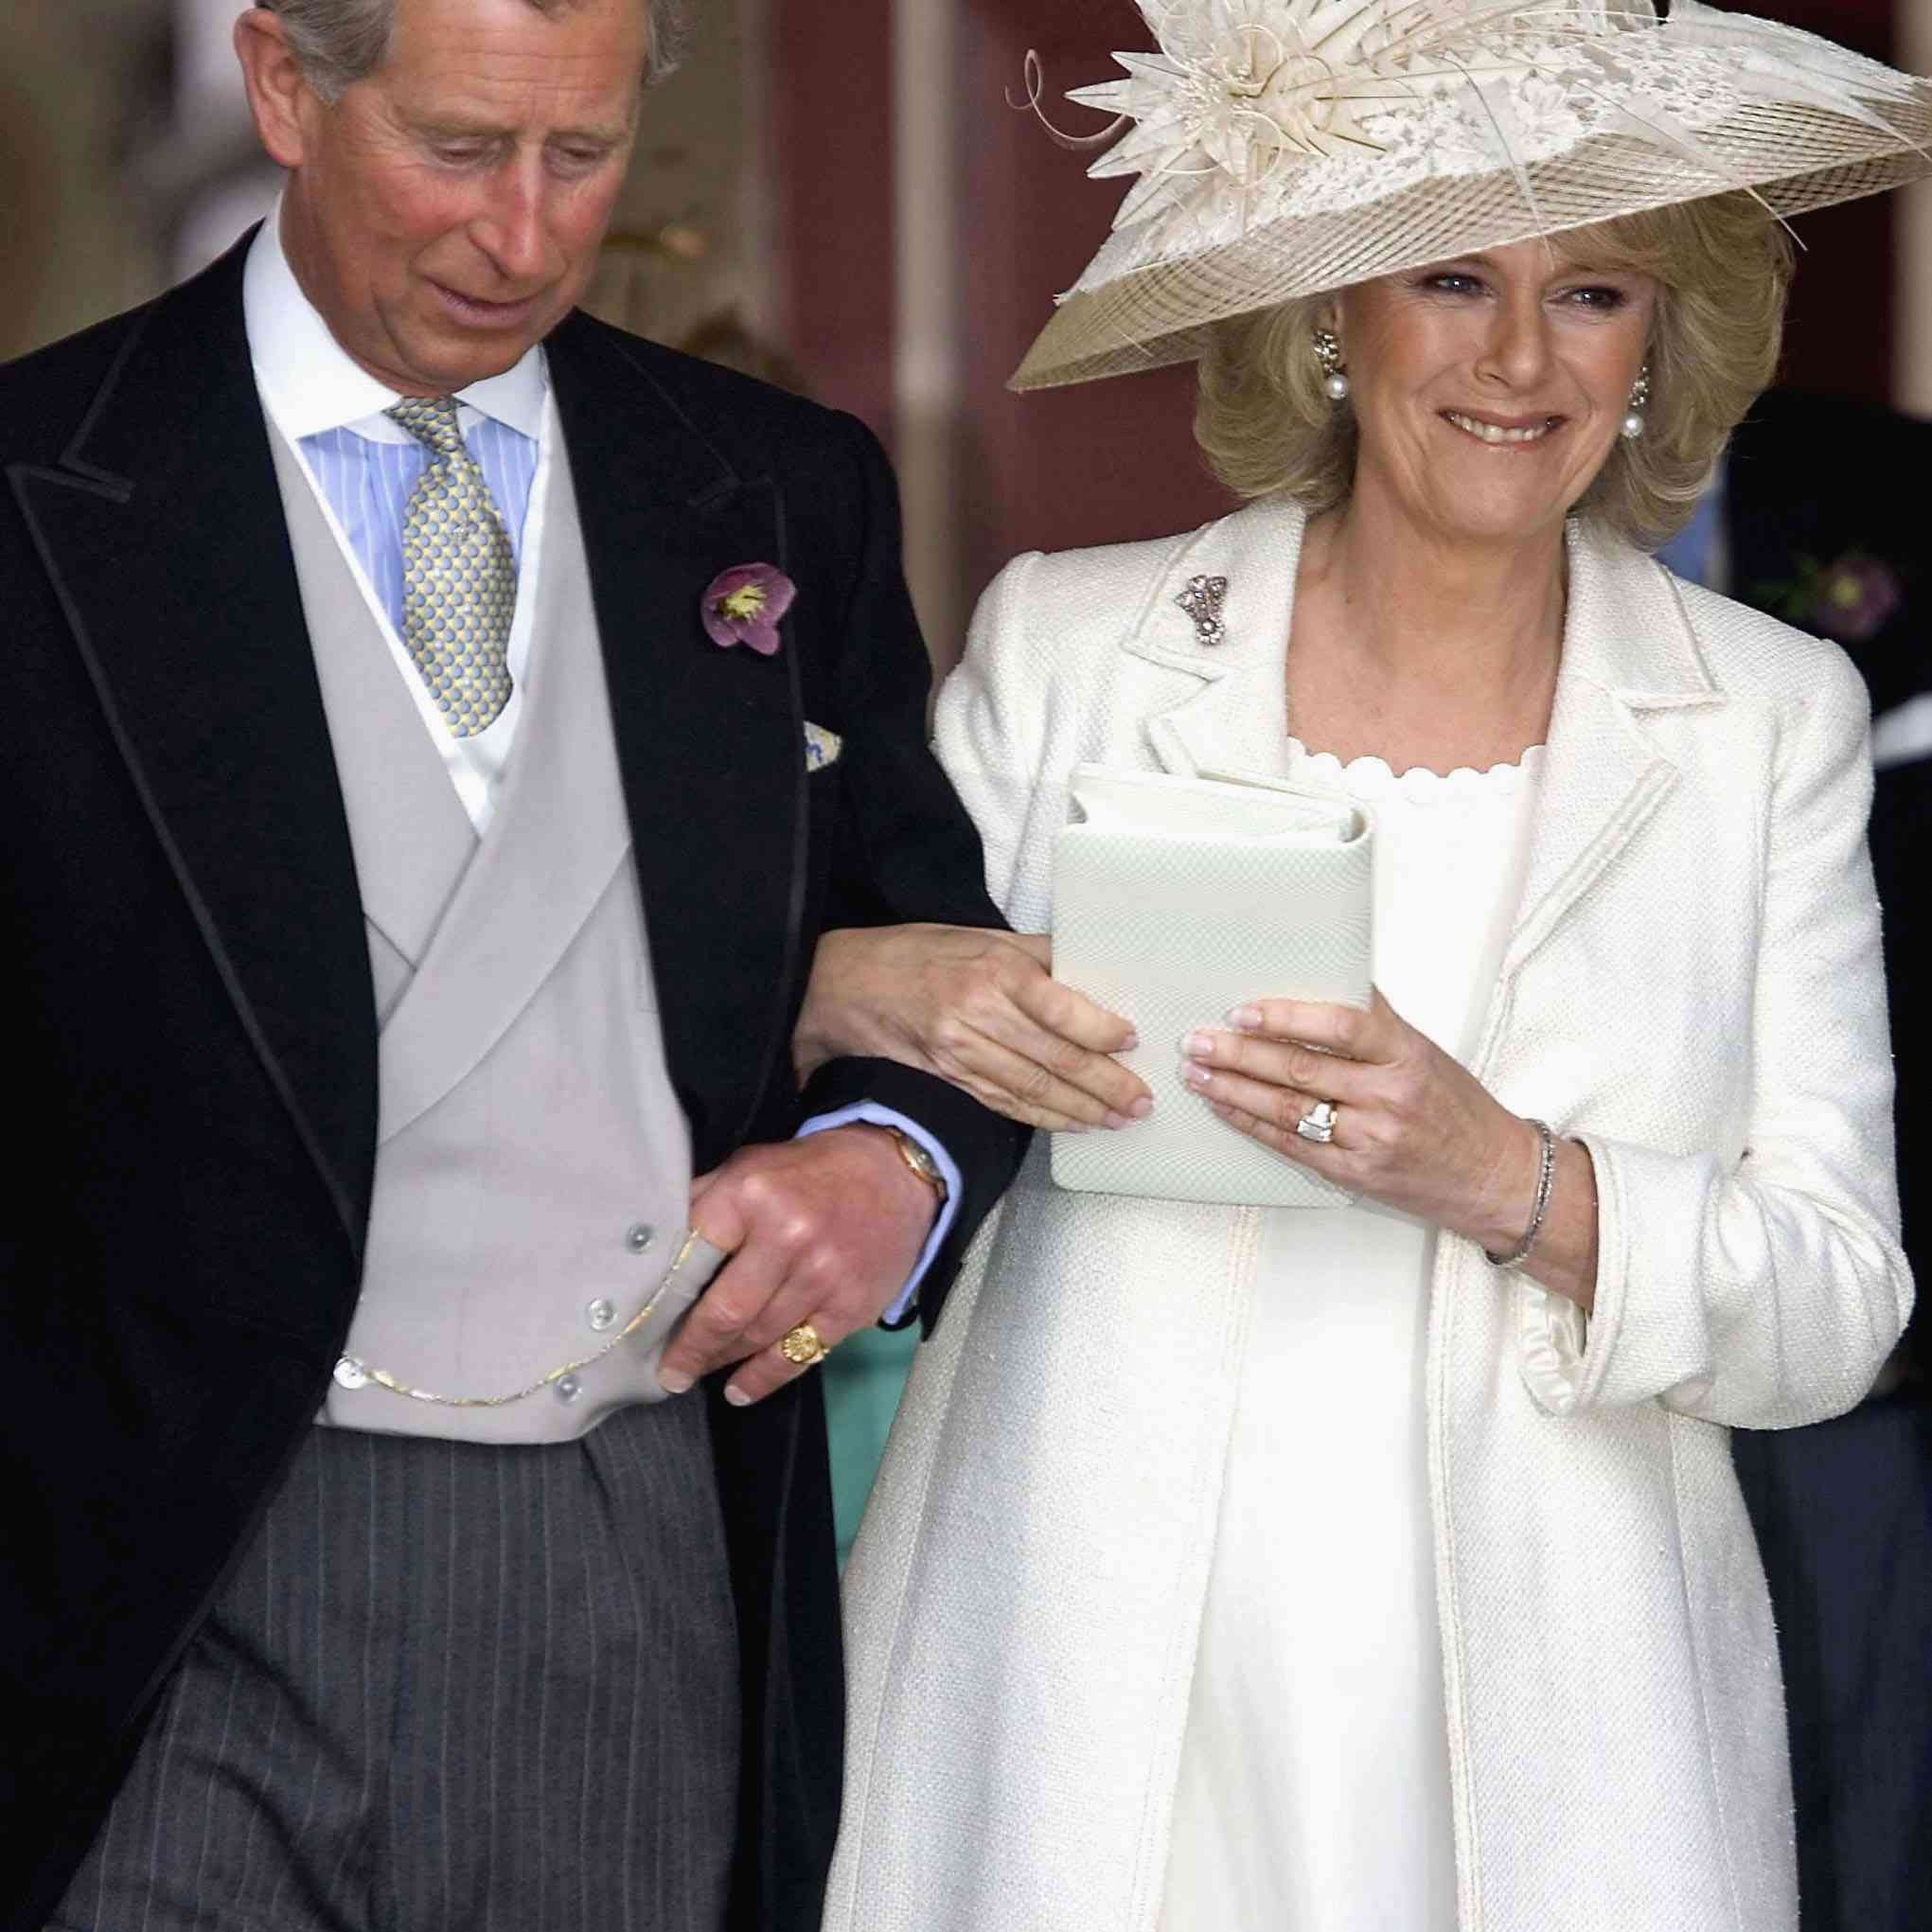 Prince Charles and Duchess Camila Parker Bowles at their civil wedding ceremony.